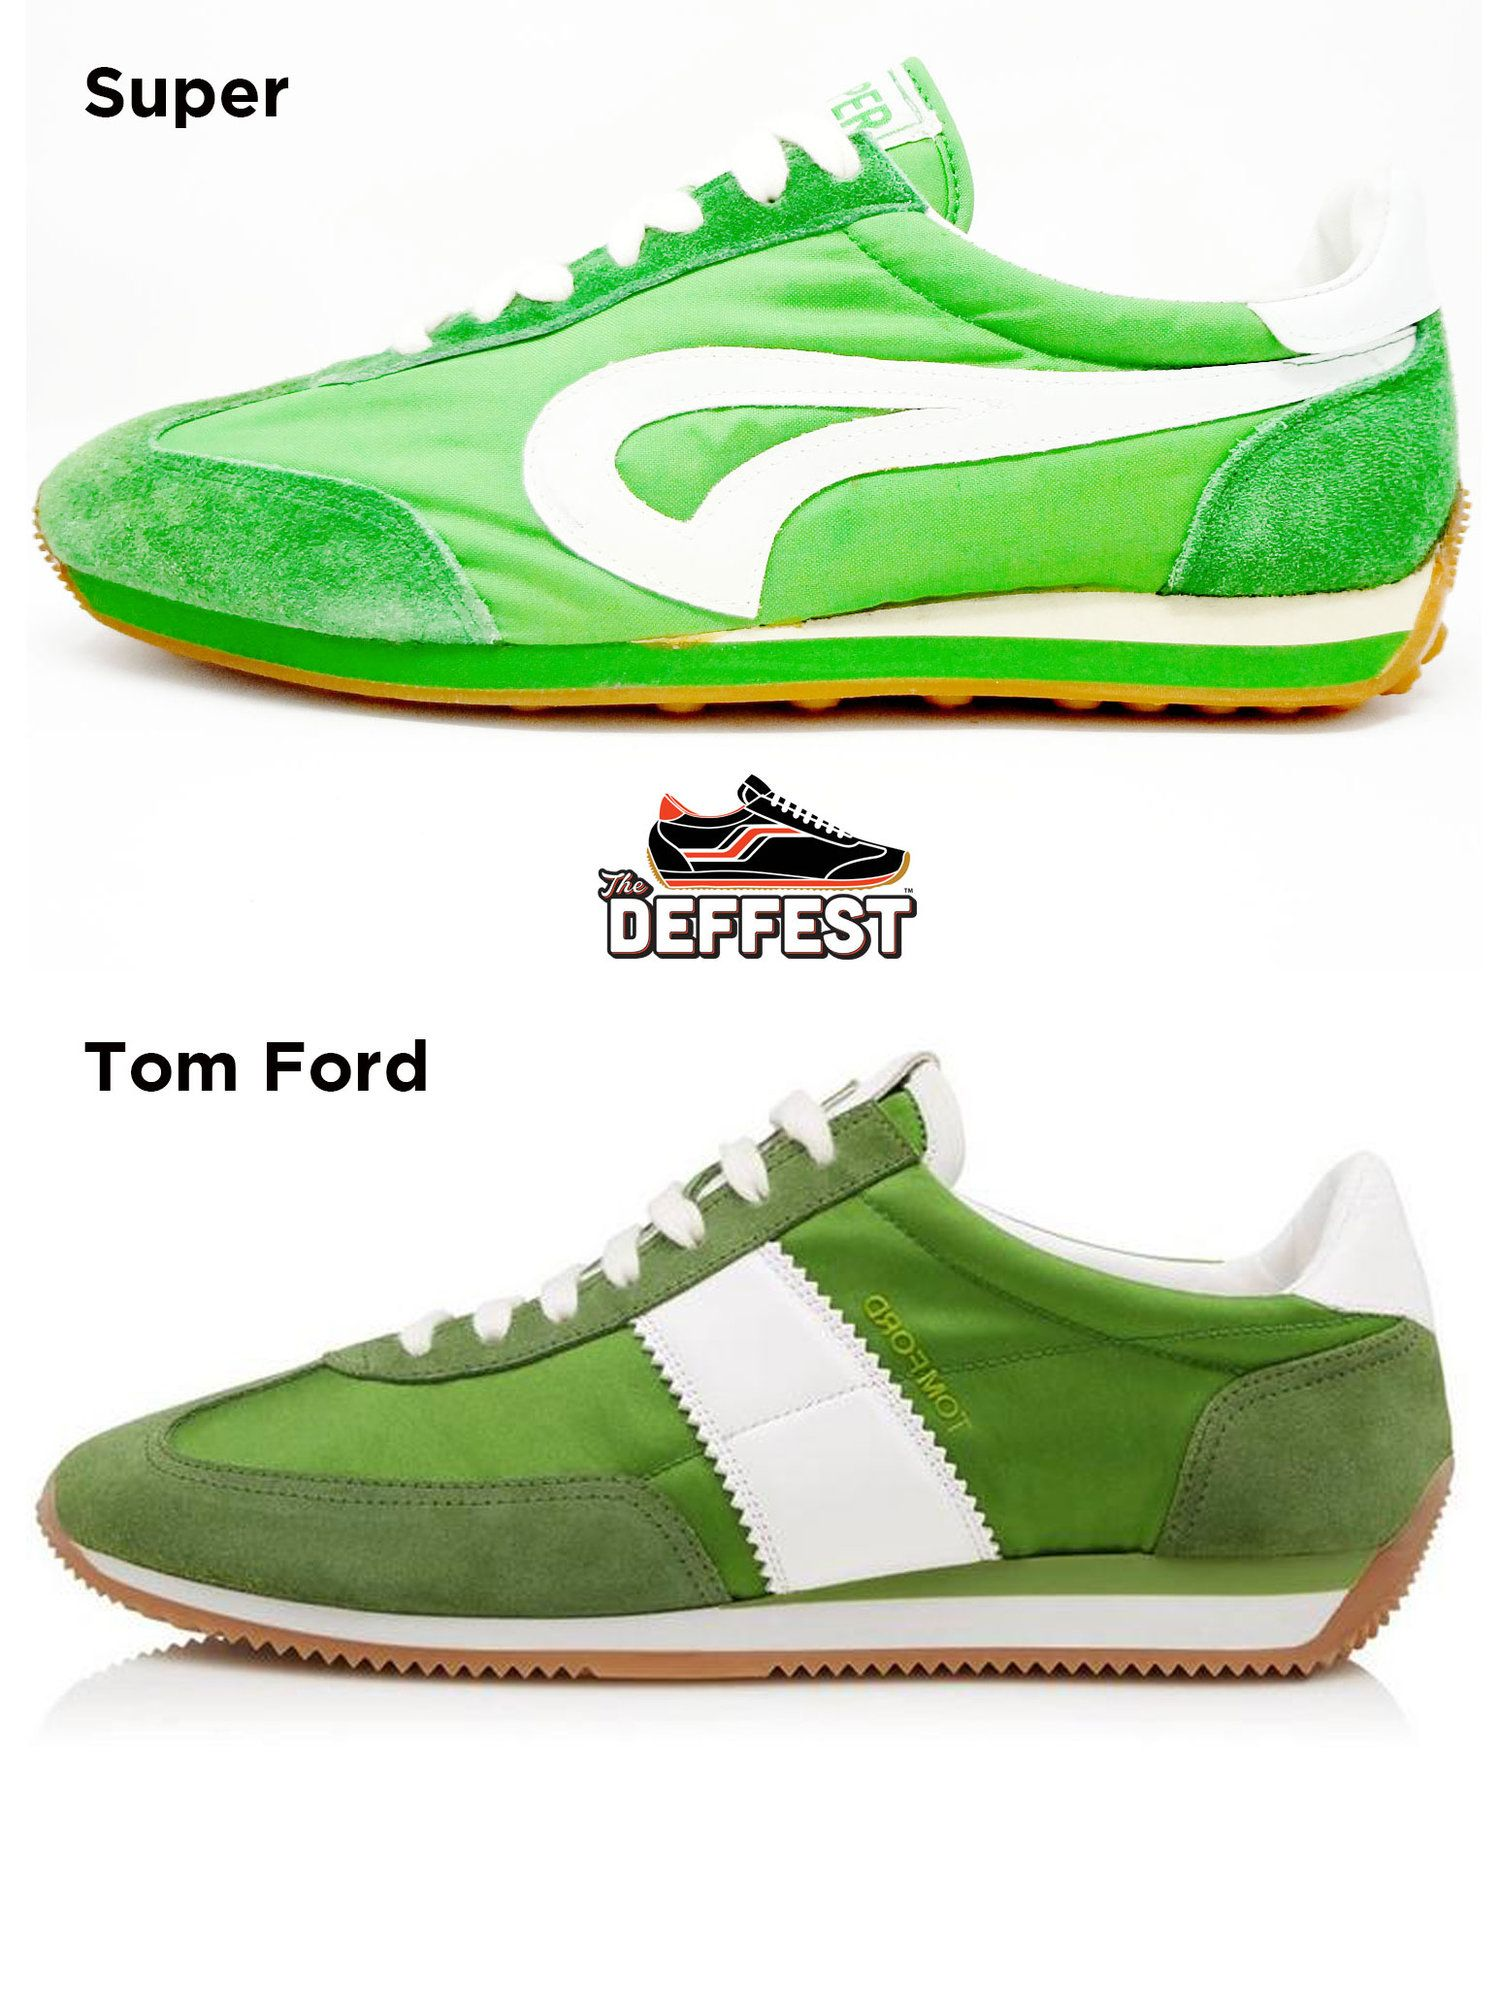 Super Brand Vintage Sneaker Vs Tom Ford Orford Runner Compared The Deffest Vintage Sneakers Retro Sneakers Sneakers